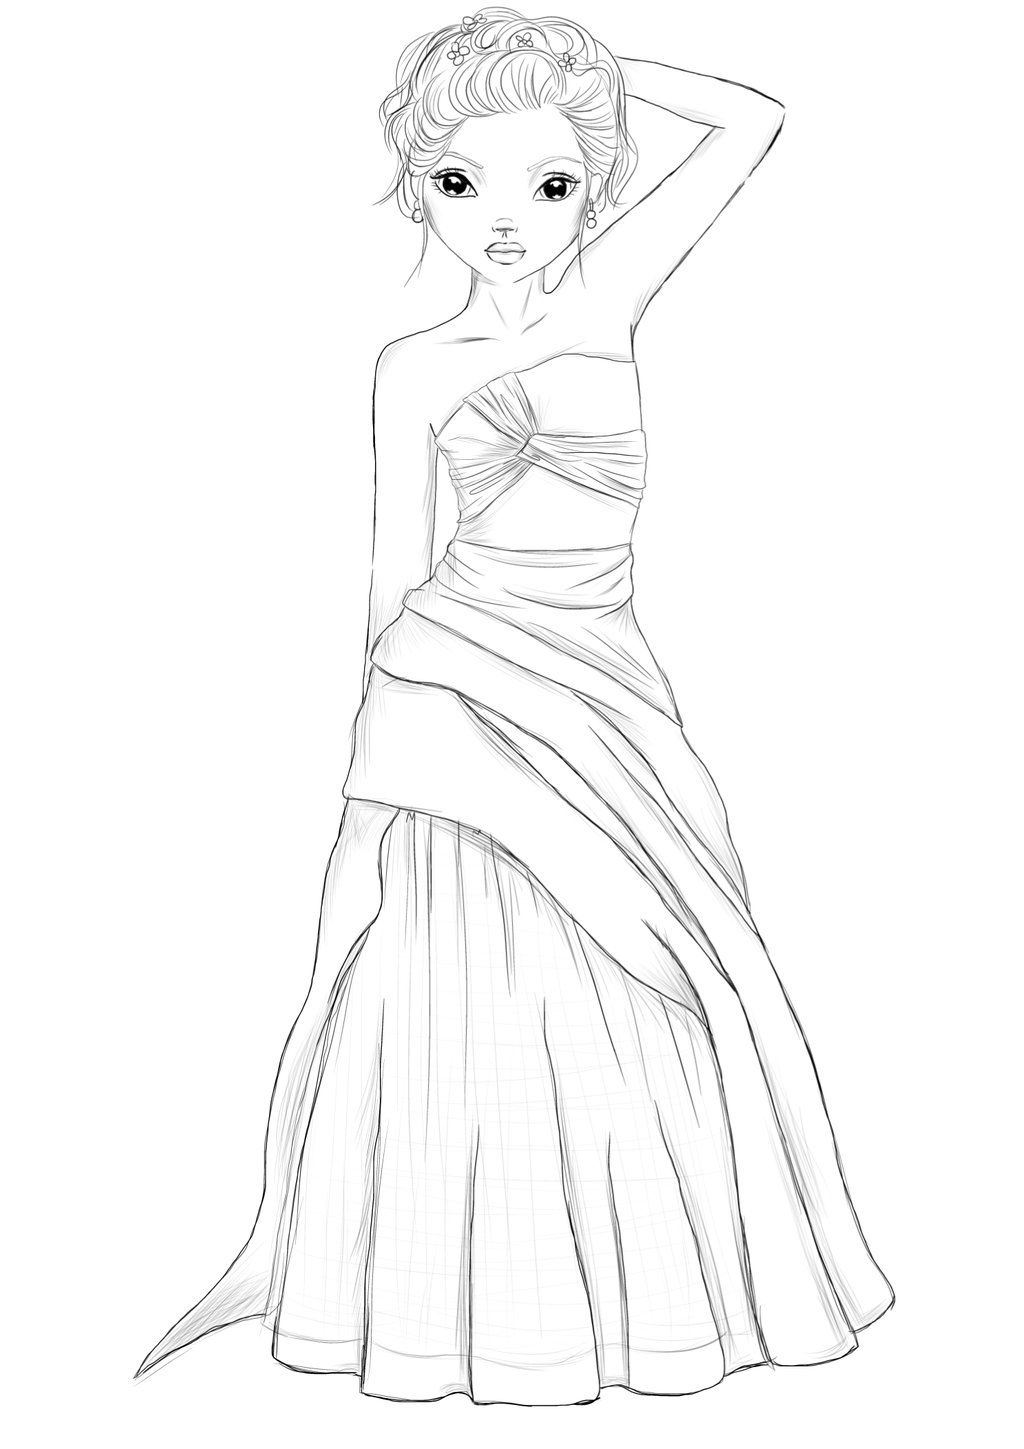 Woman in addition Qatar as well A B A moreover Narcissus further B B. on net coloring page